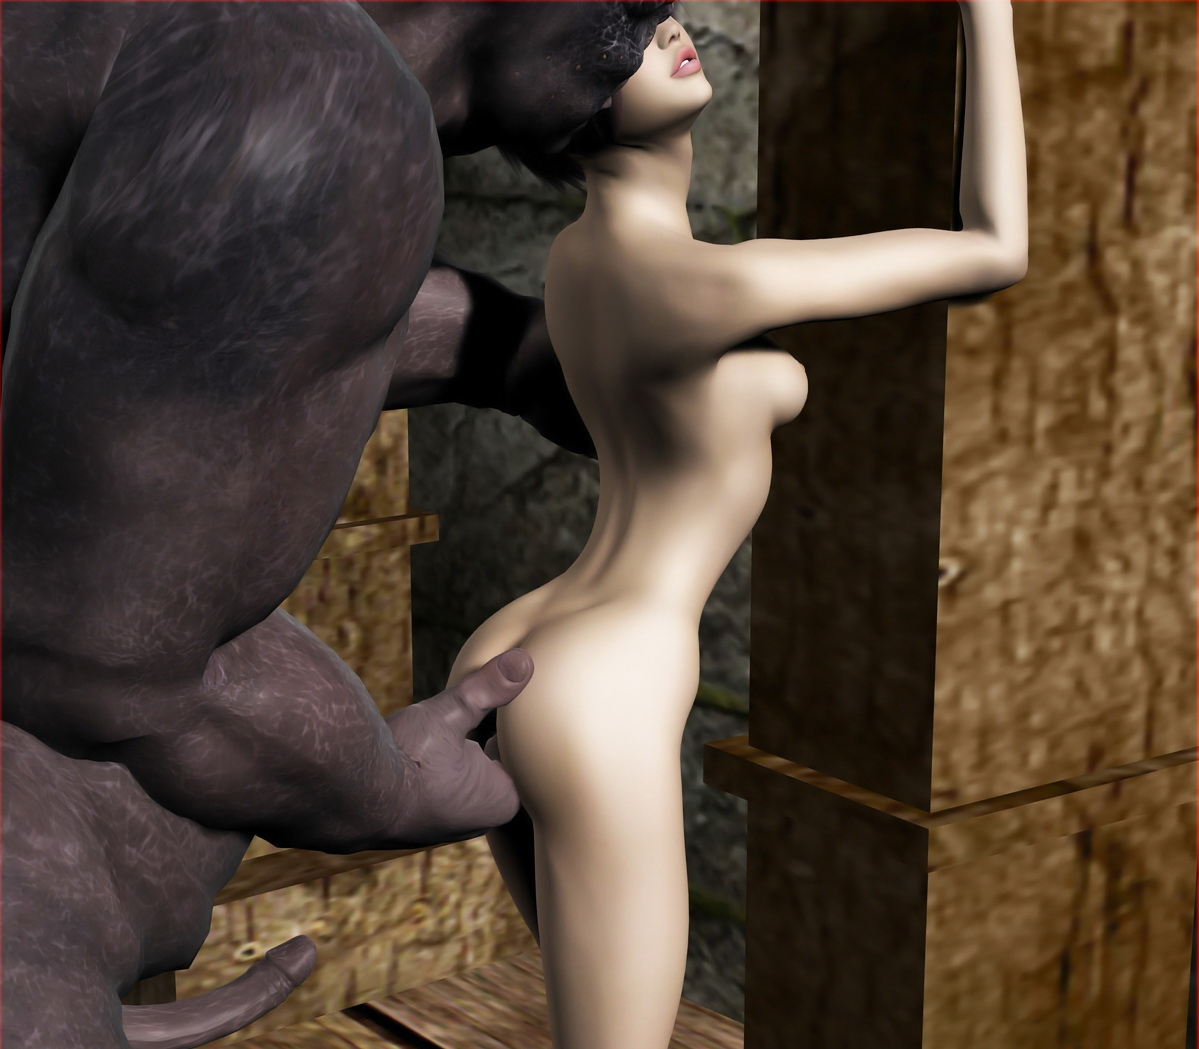 3d porn men fucks monster women nudes photo